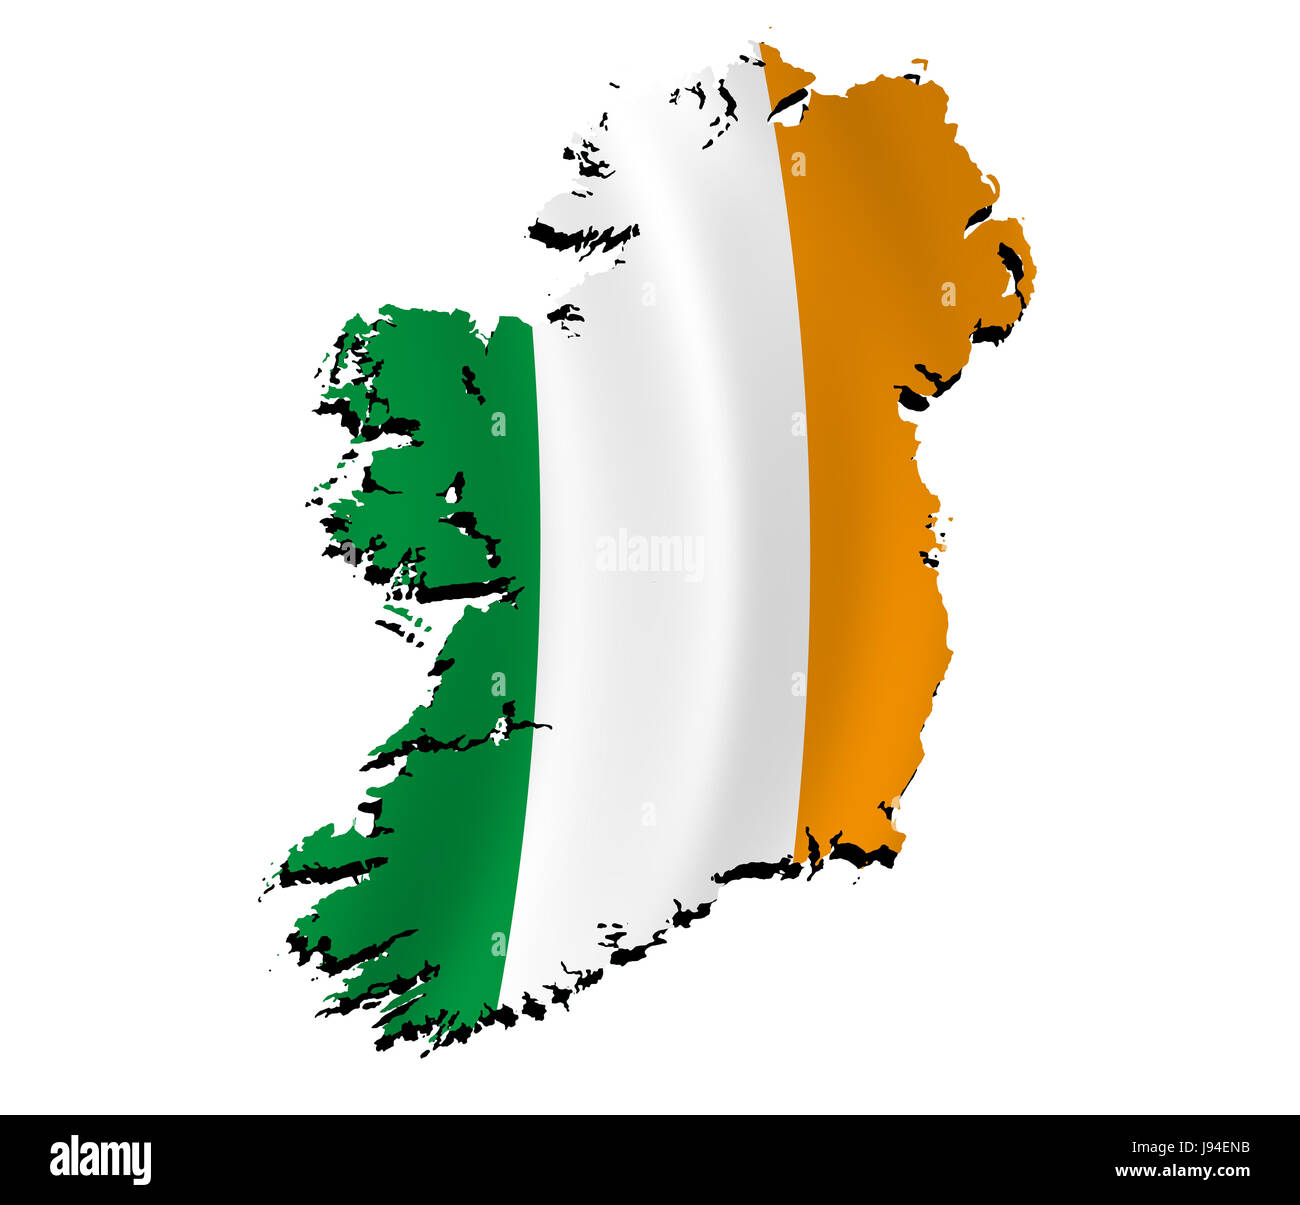 Flag, Border, Outline, Ireland, Atlas, Map Of The World, Map, Detail,  Isolated,